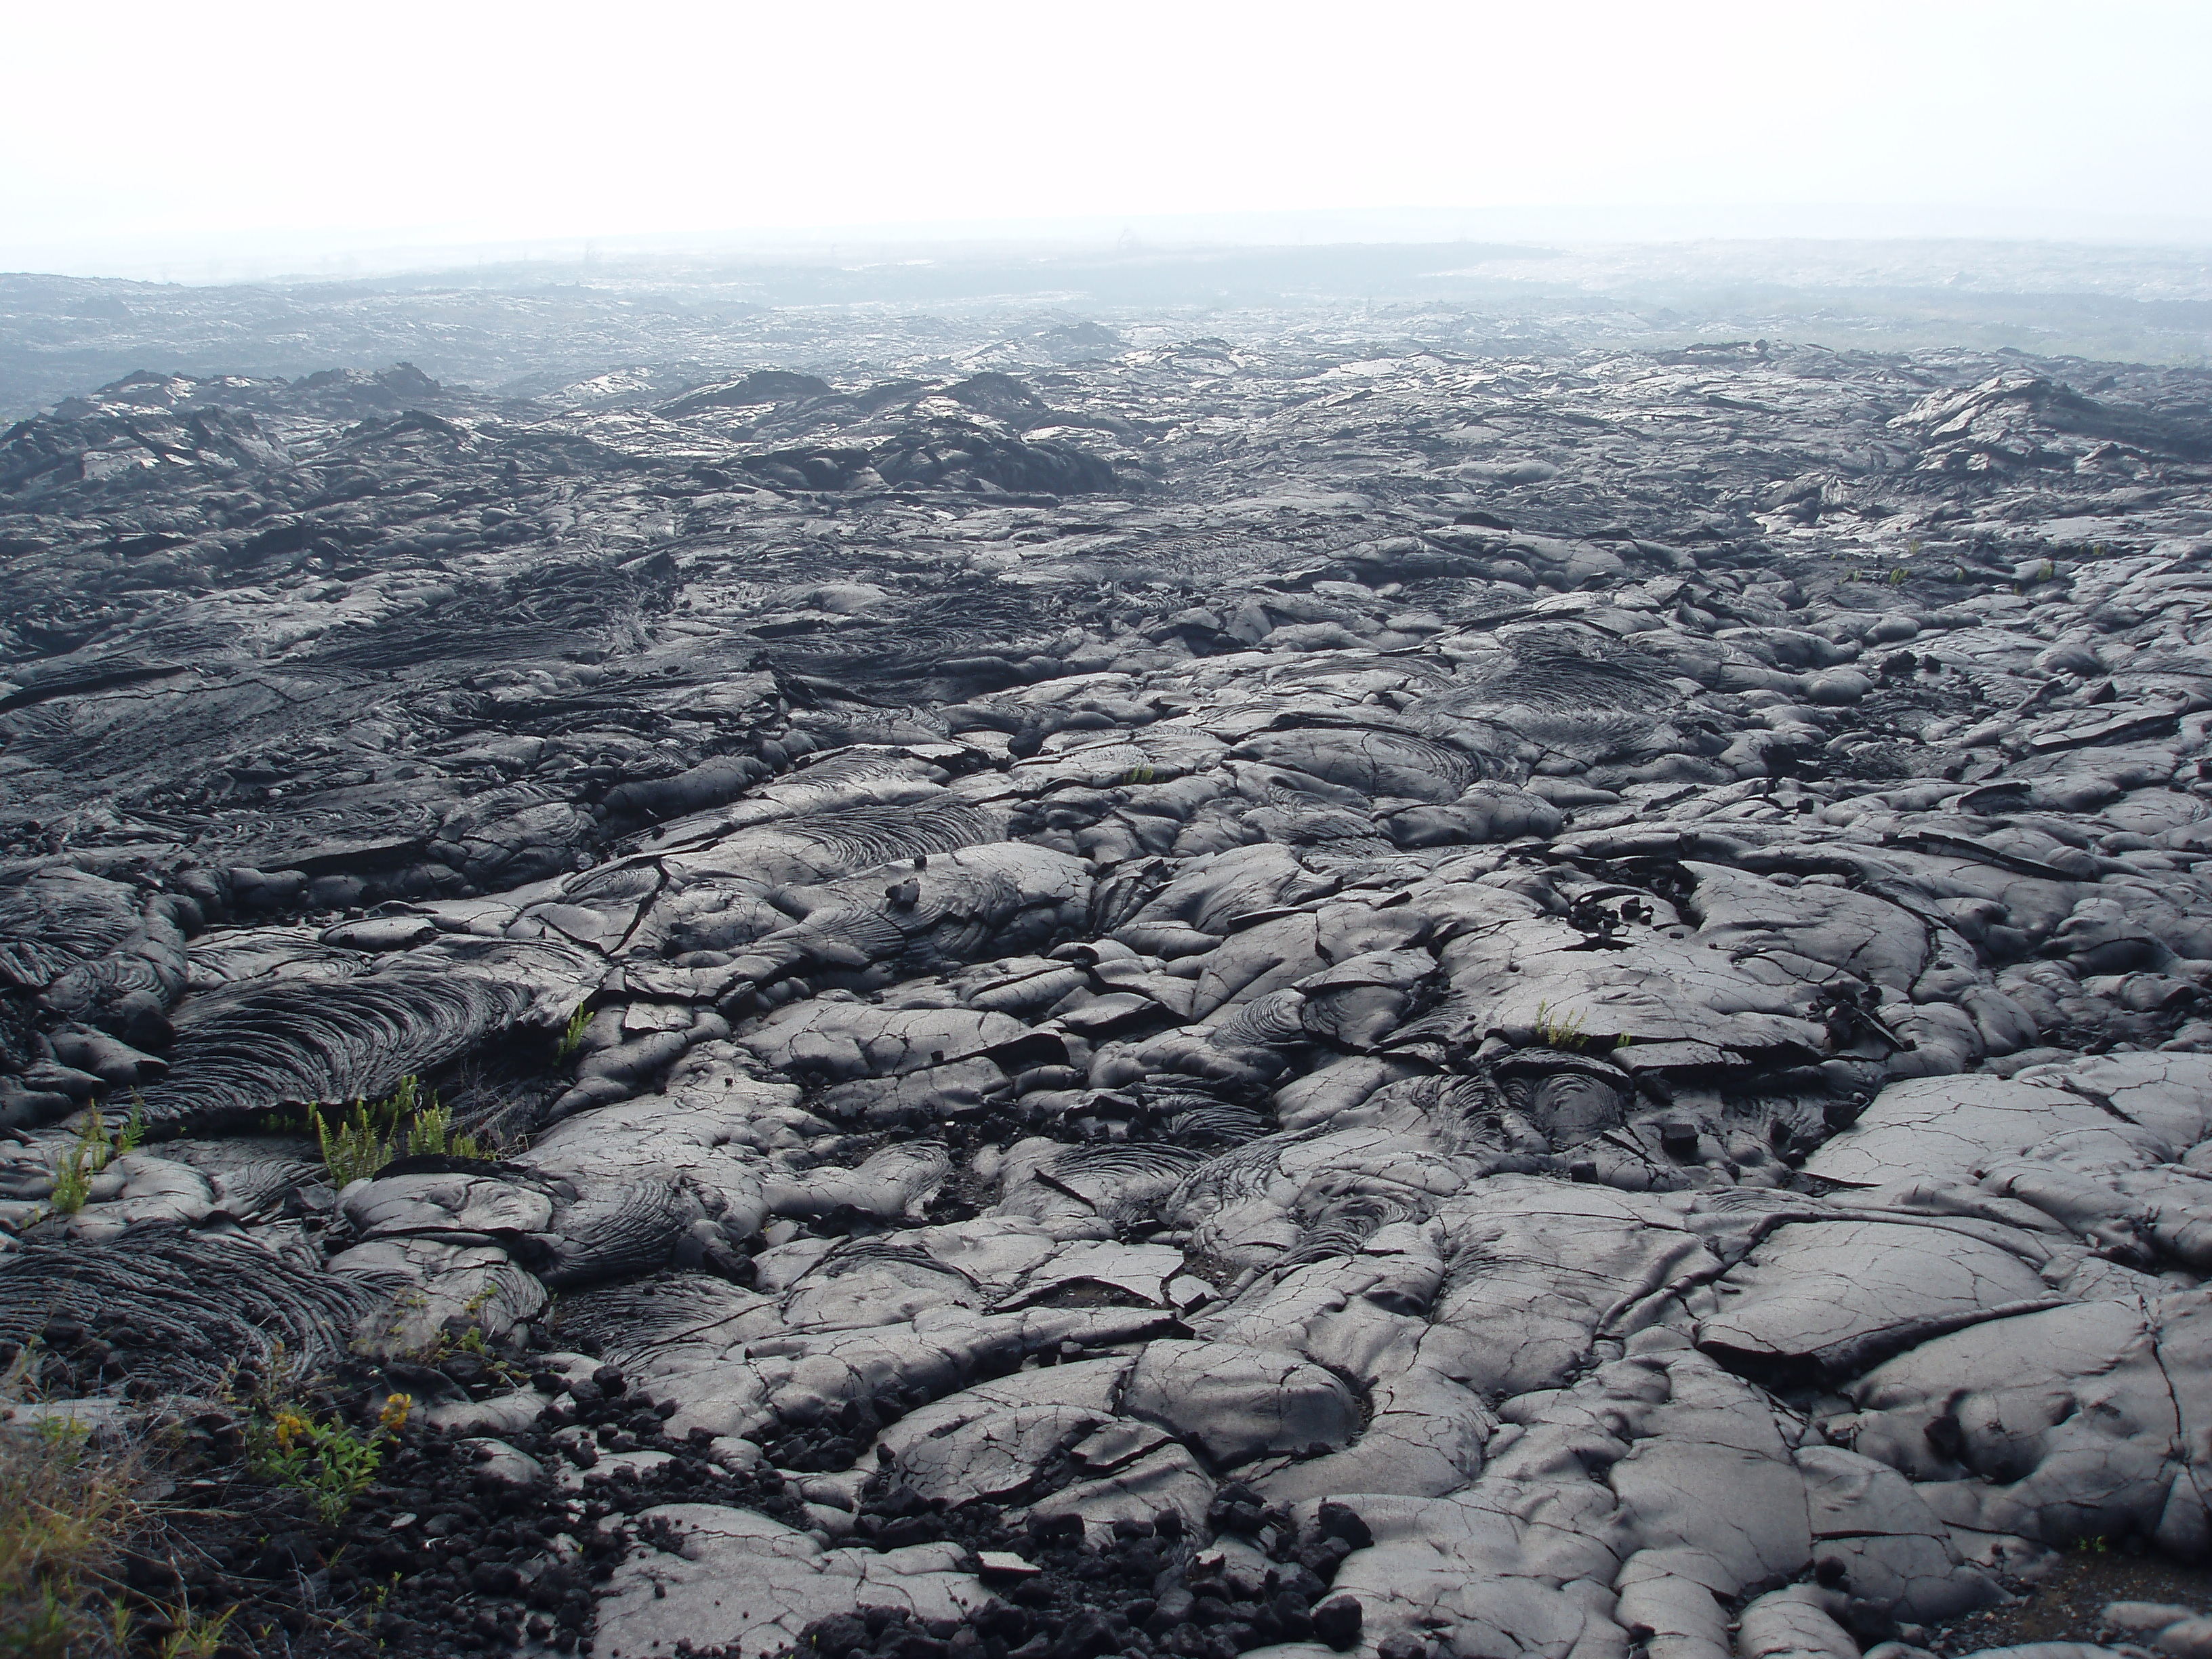 broken surface of a solidified lava field with volcanic gasses in the background